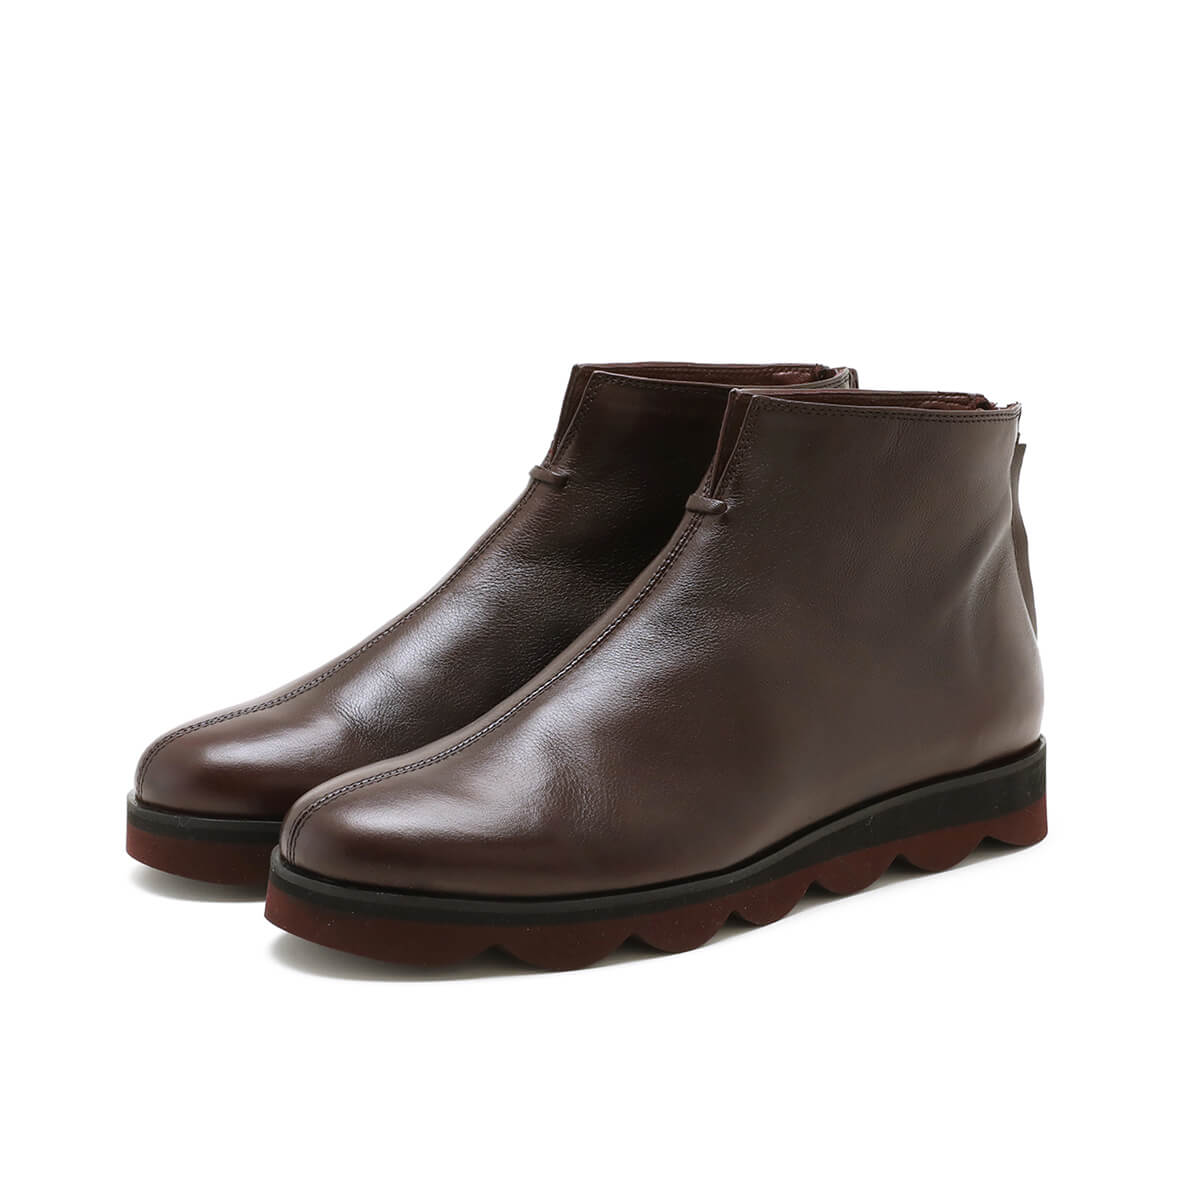 Bordeaux back zip ankle boot with light rubber sole